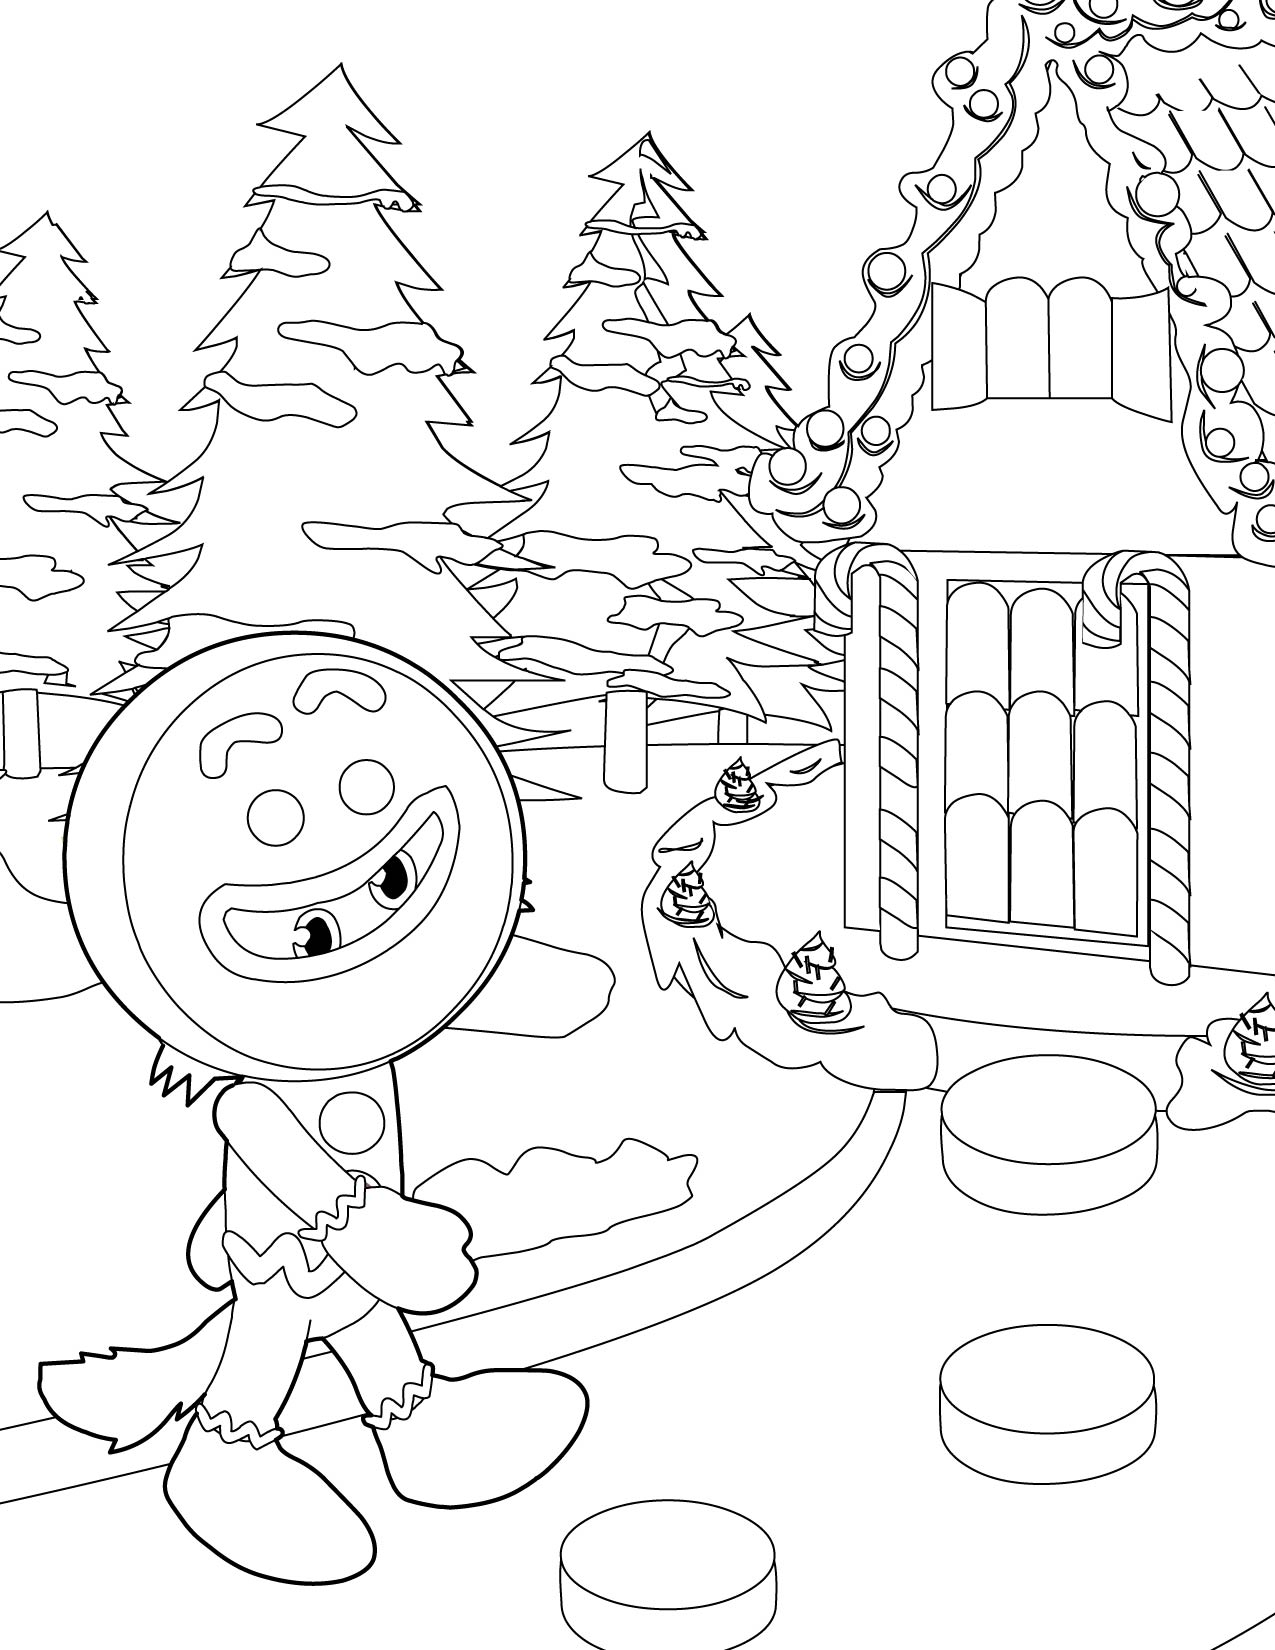 gingerbread house coloring page gingerbread house coloring pages to download and print for house page gingerbread coloring